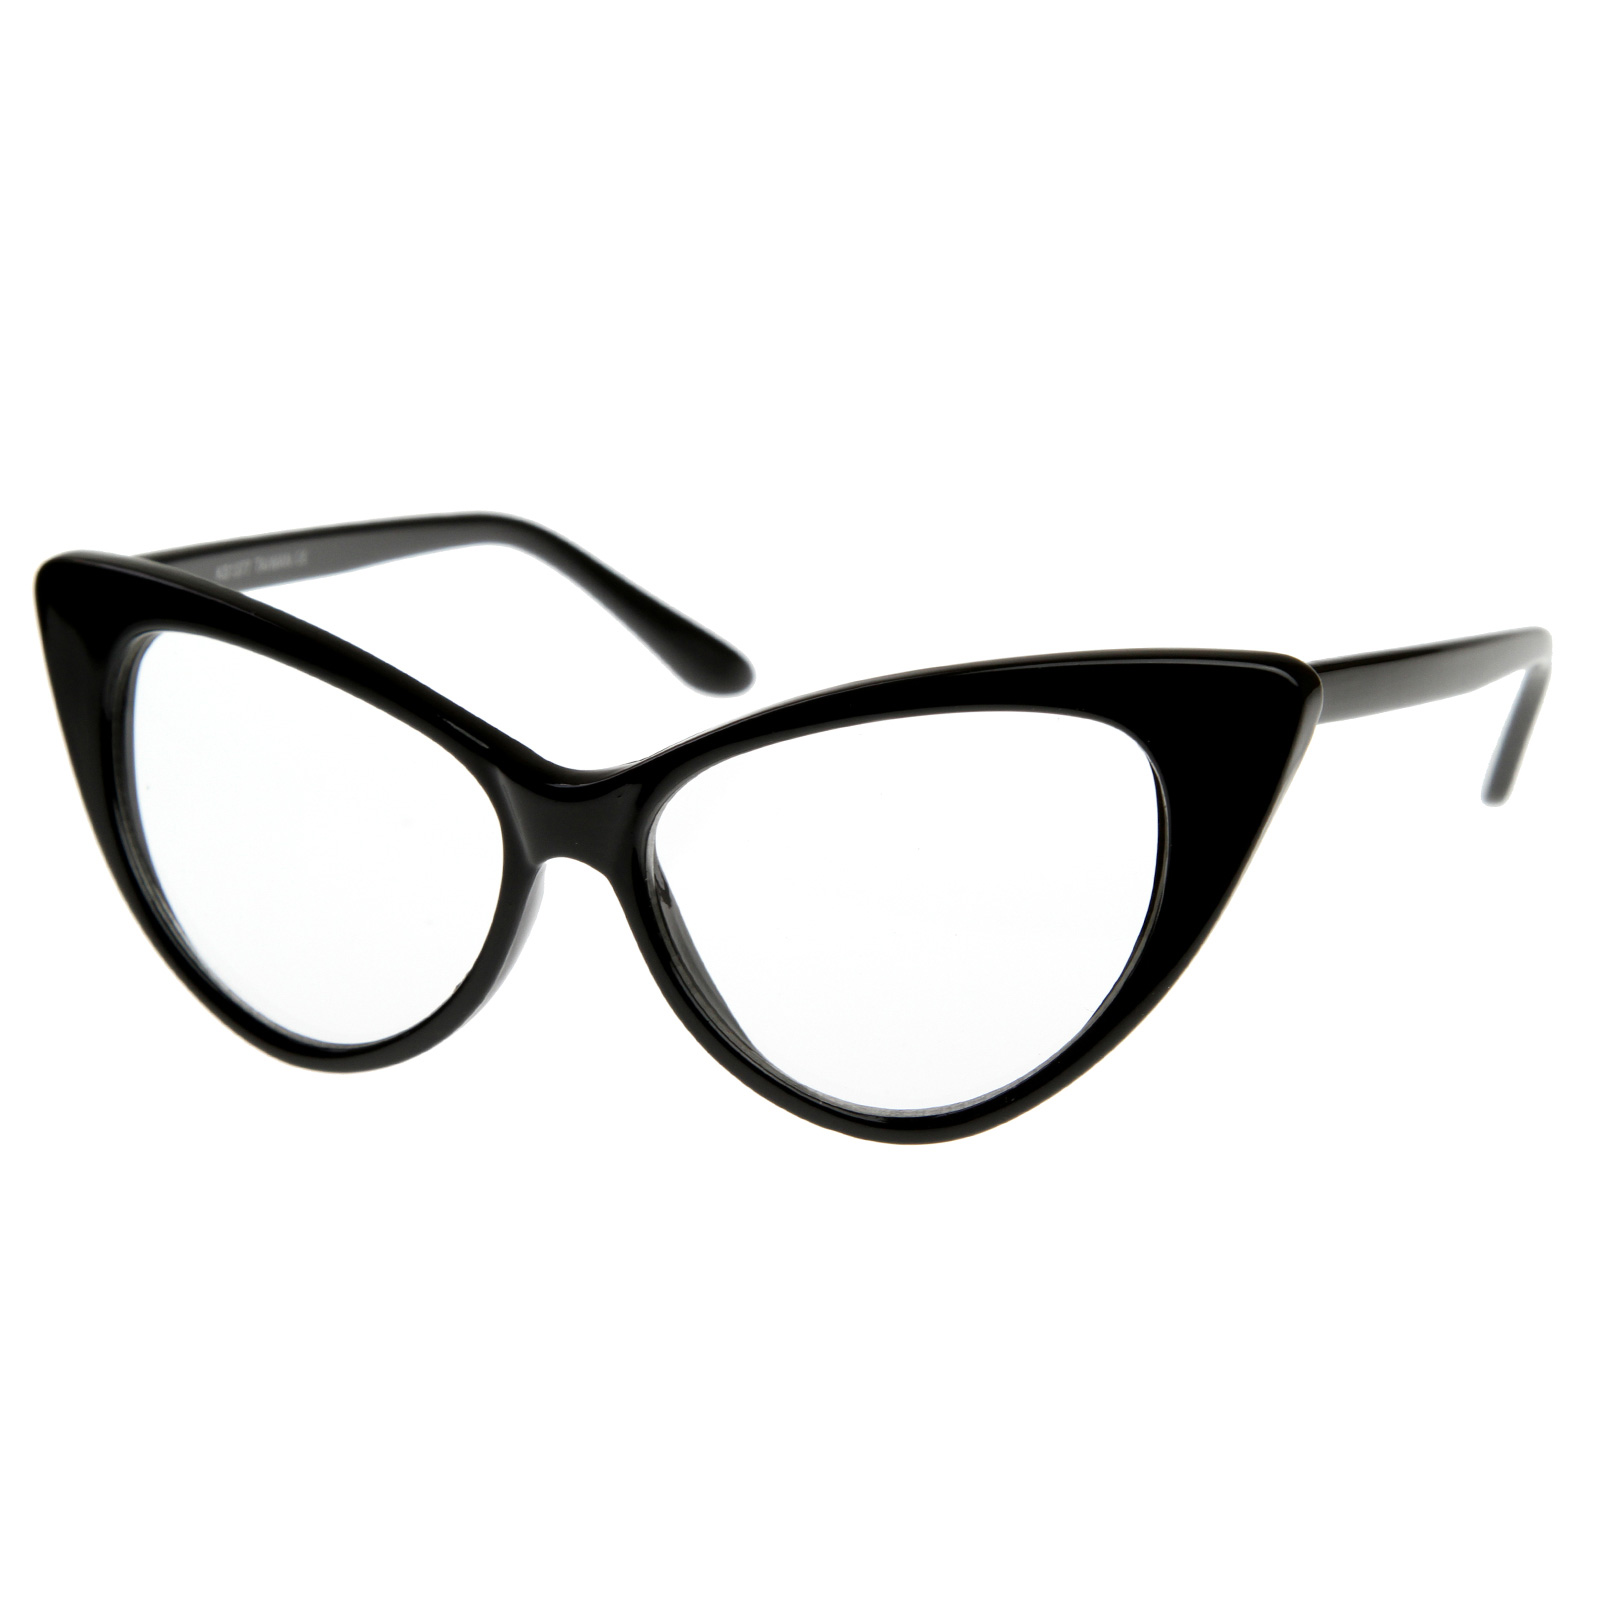 1960 s vintage inspired mod fashion clear lens cat